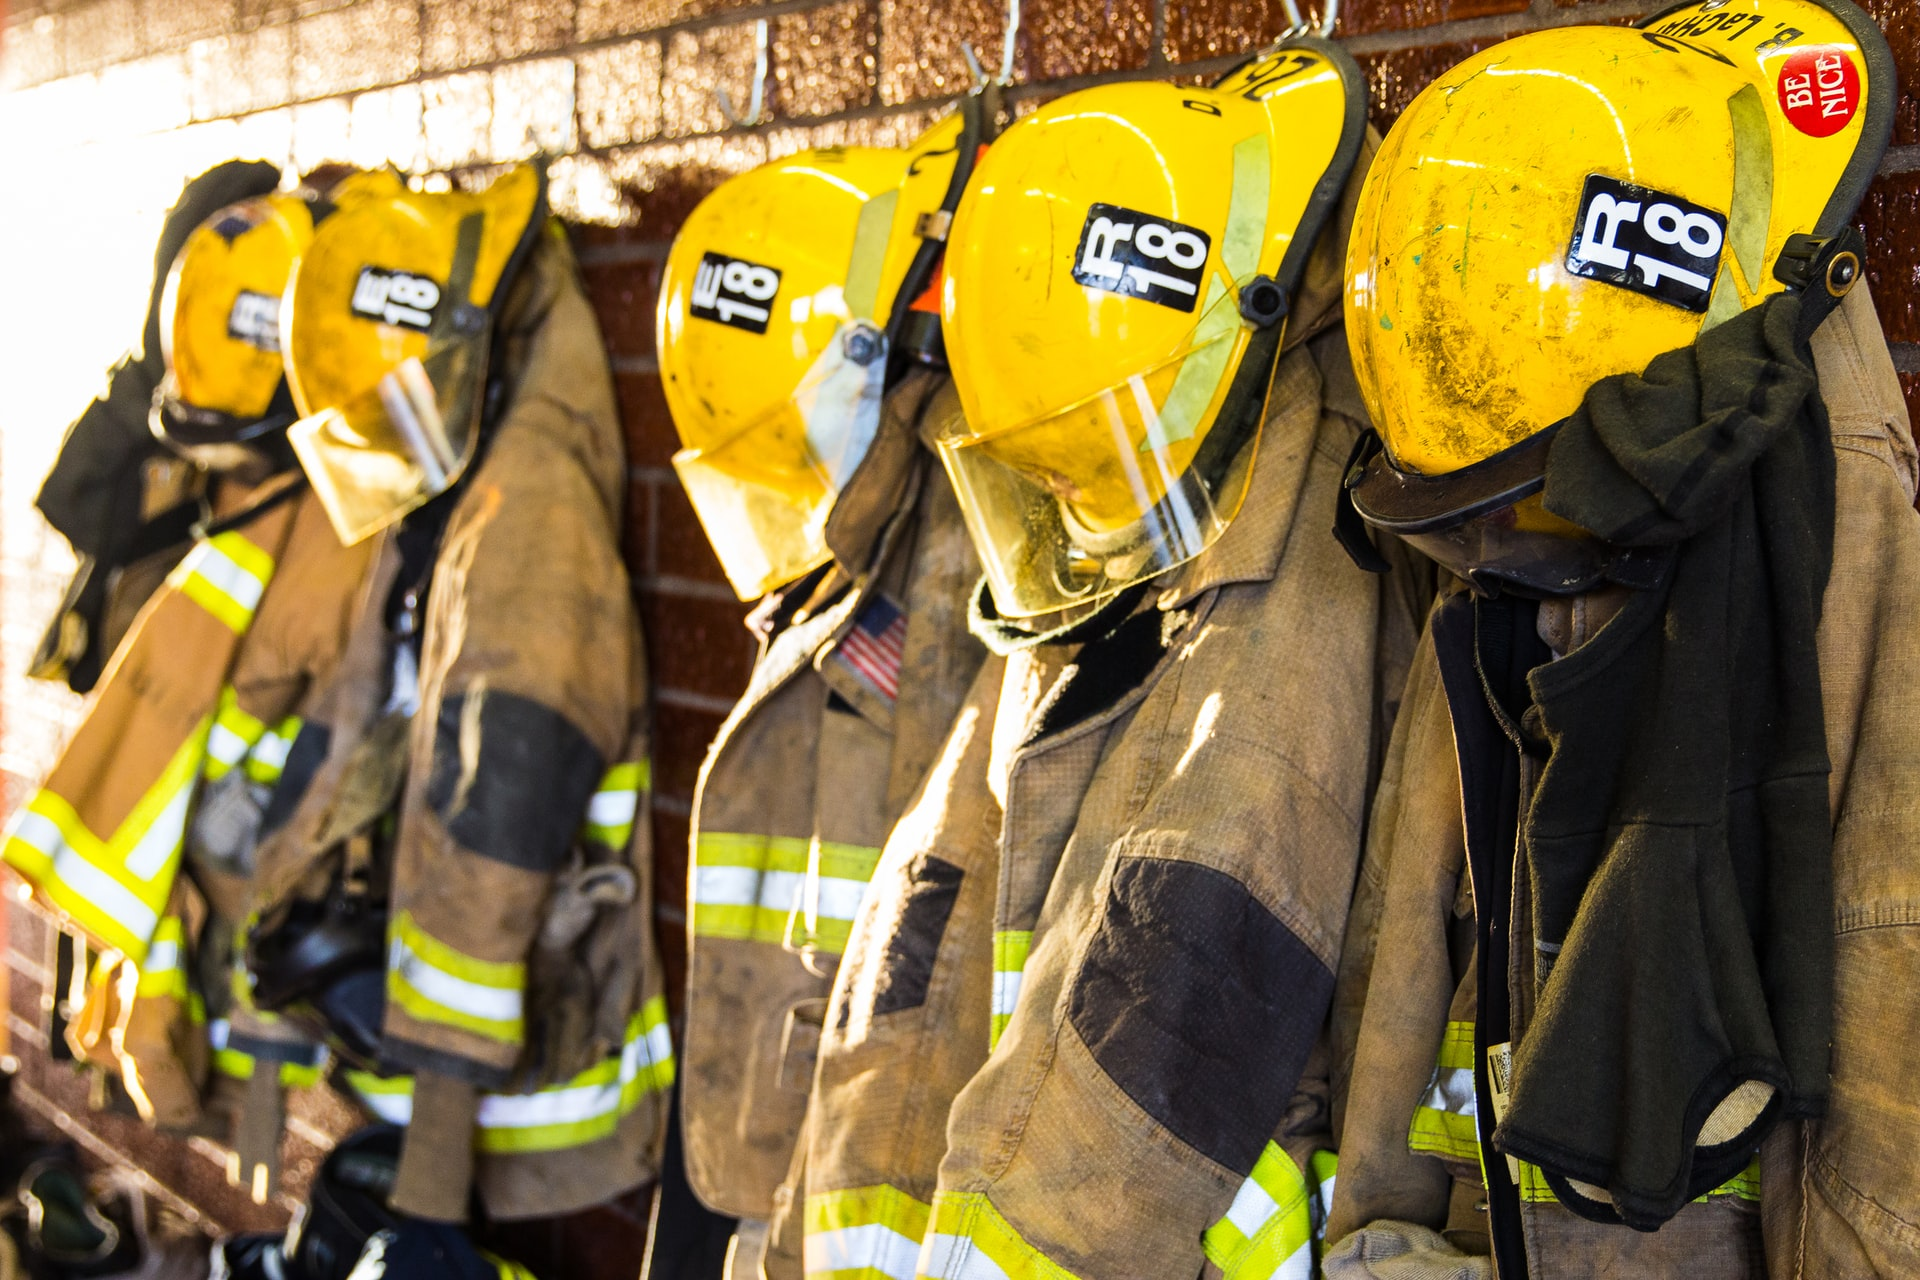 Panel Orders Back Pay to Firefighter Who Bit off Man's Eyebrow